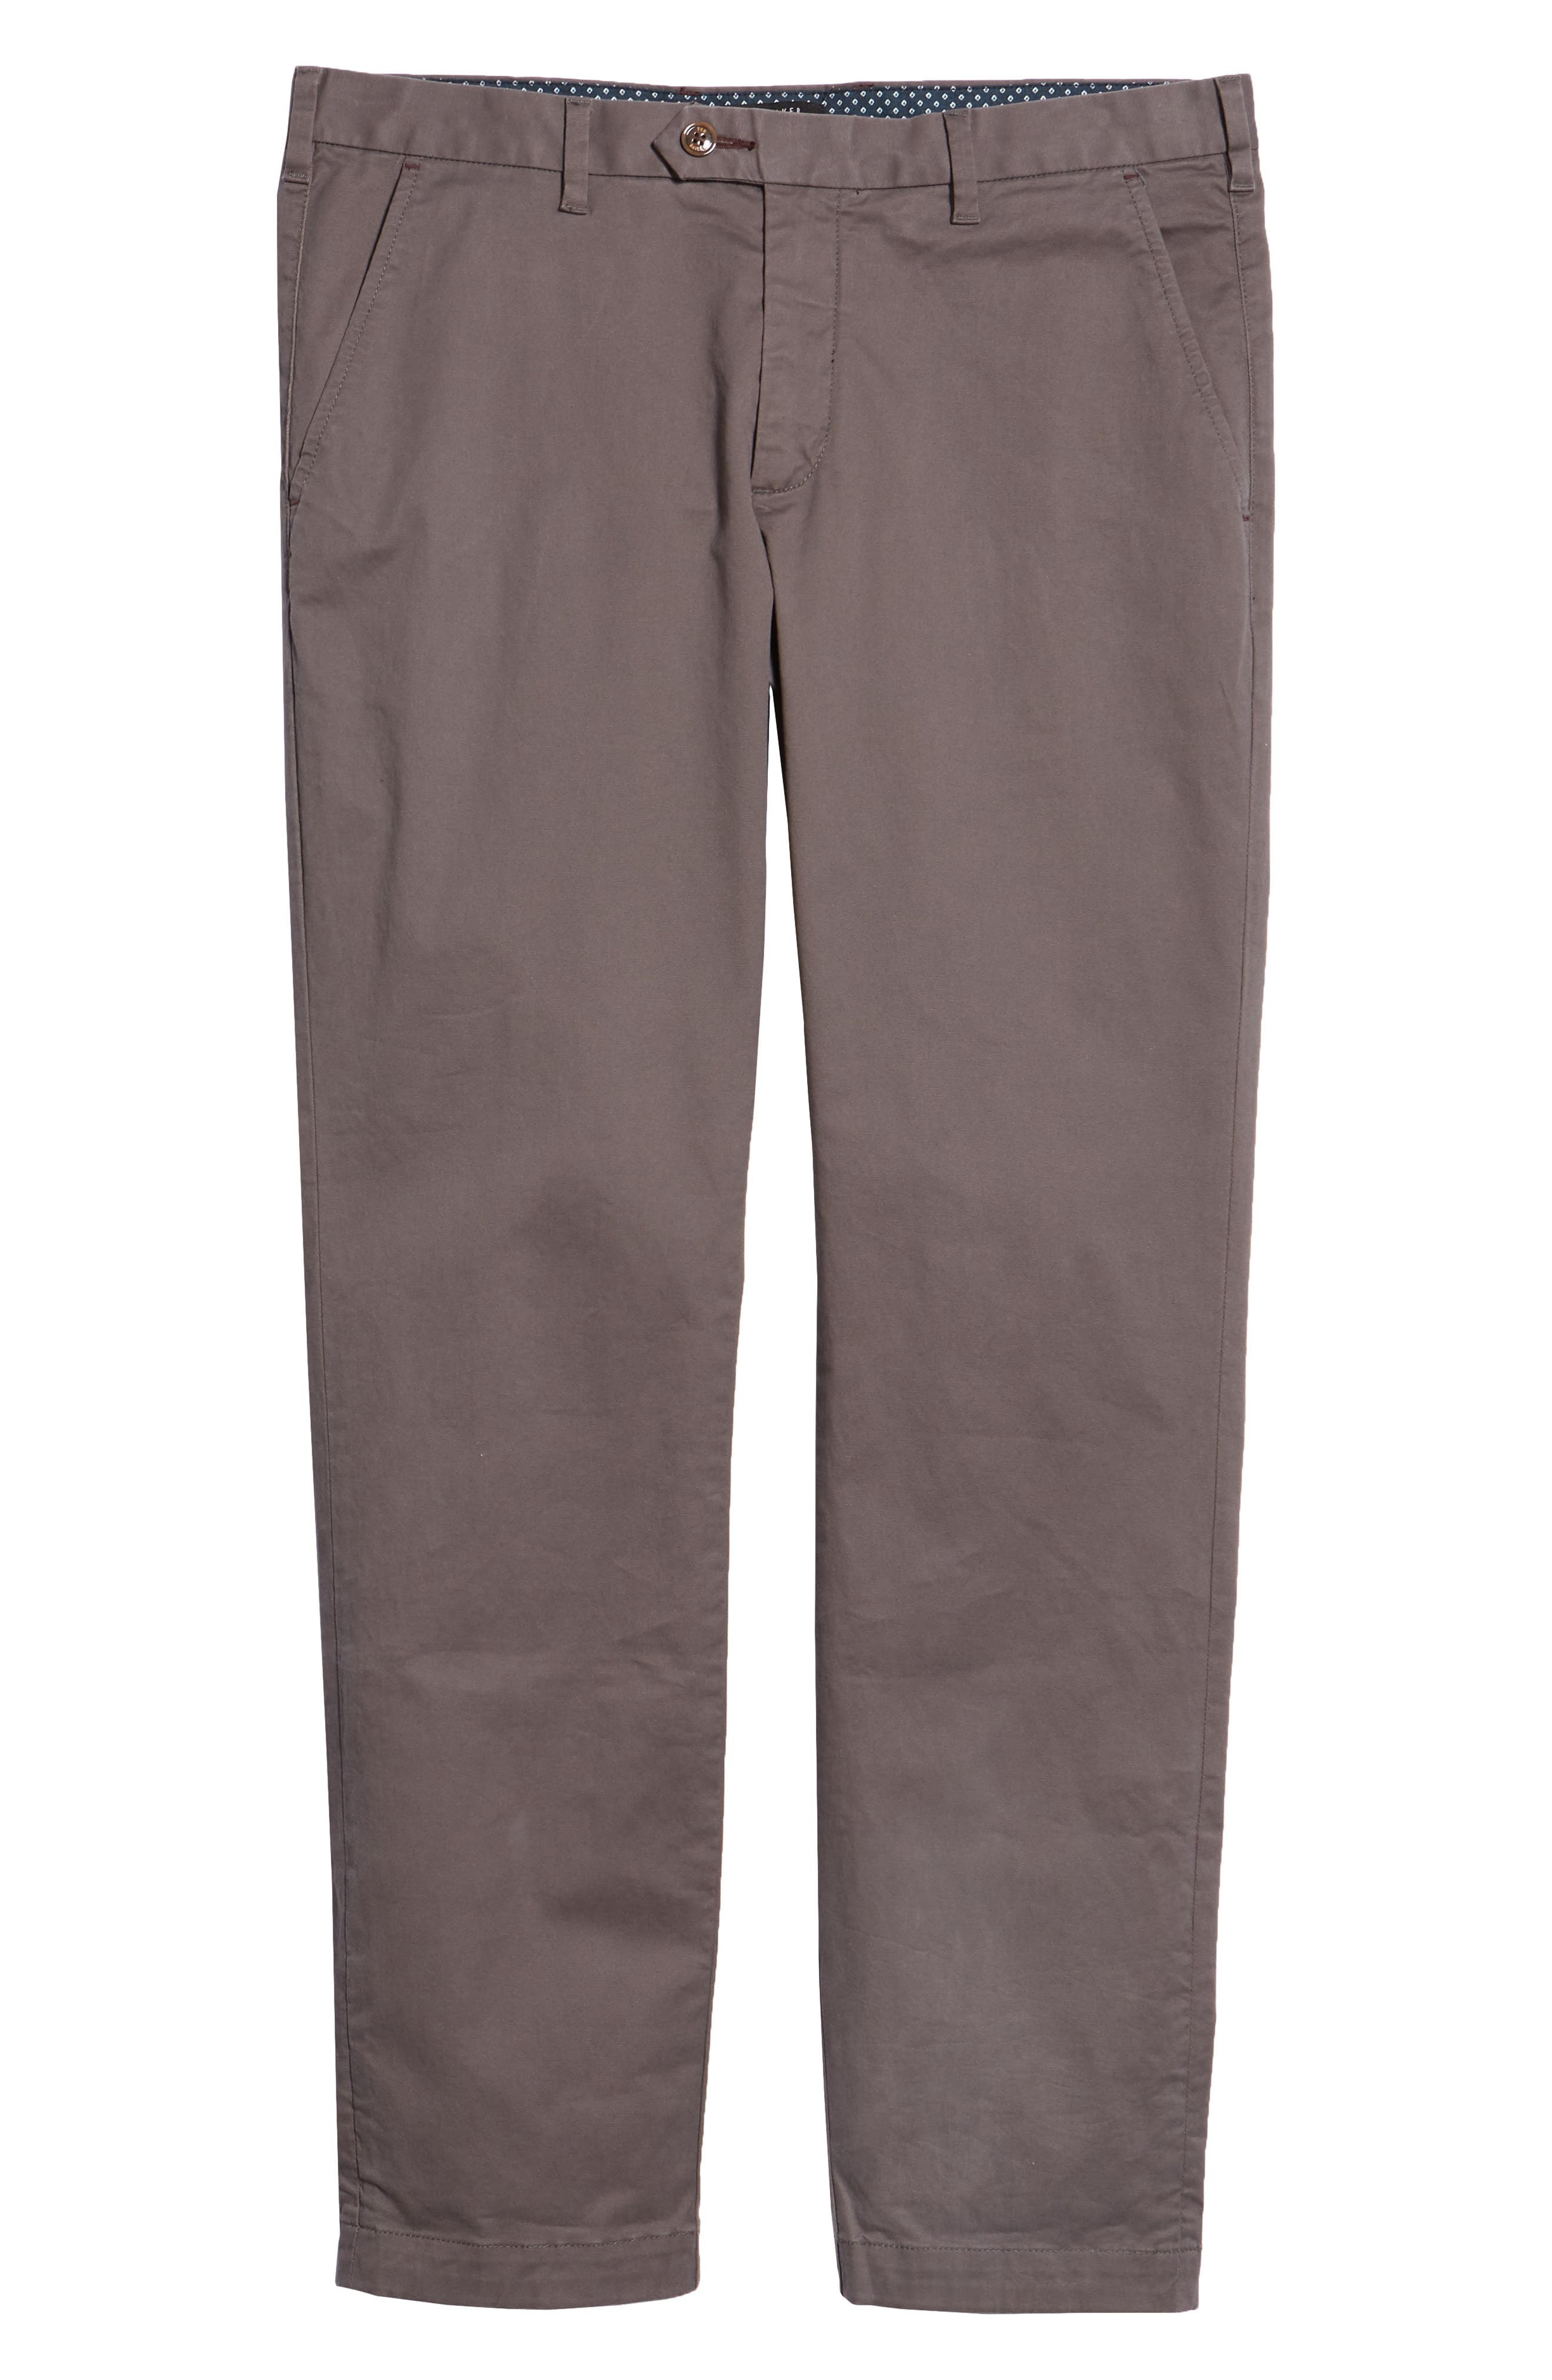 TED BAKER LONDON, Selebtt Slim Fit Stretch Cotton Chinos, Alternate thumbnail 6, color, 020